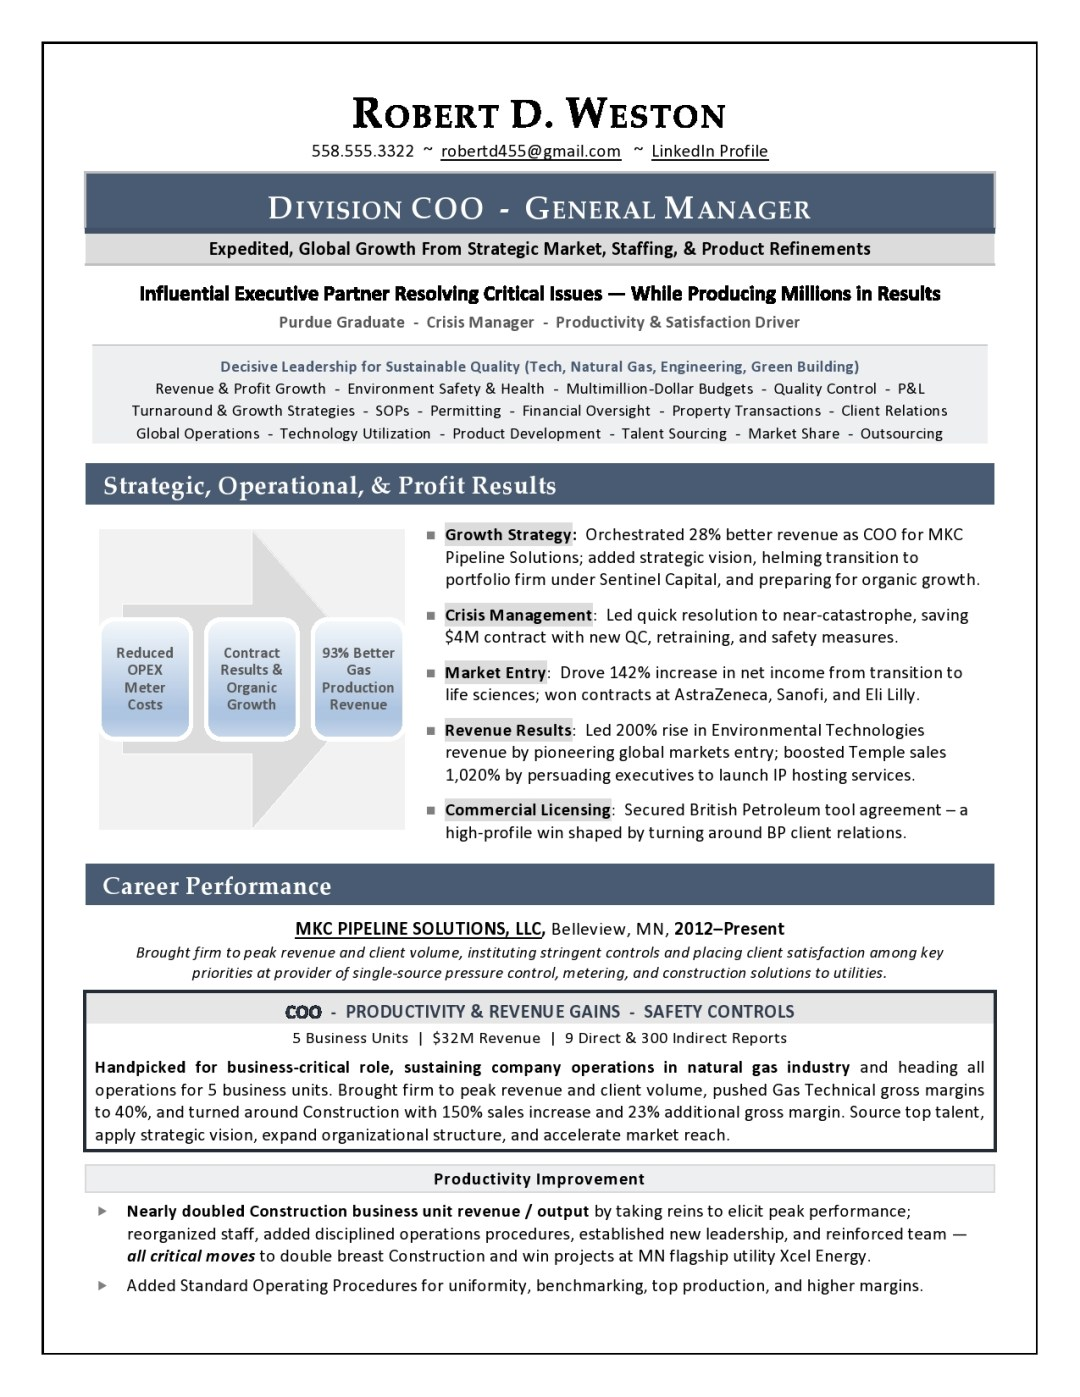 sample coo resume